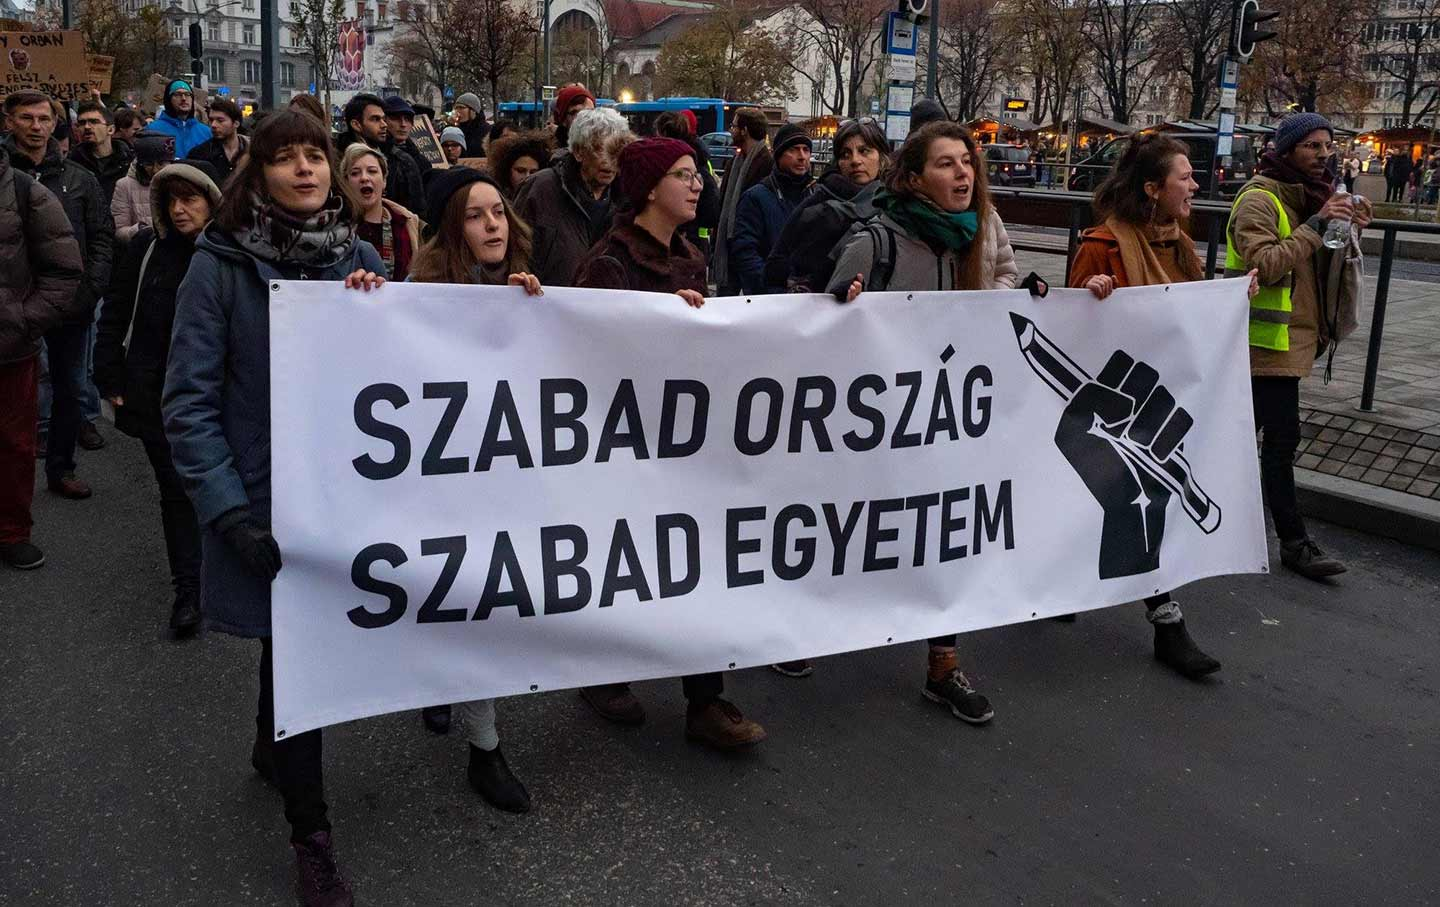 These Hungarian Students Are Fighting For Their Country's Democracy